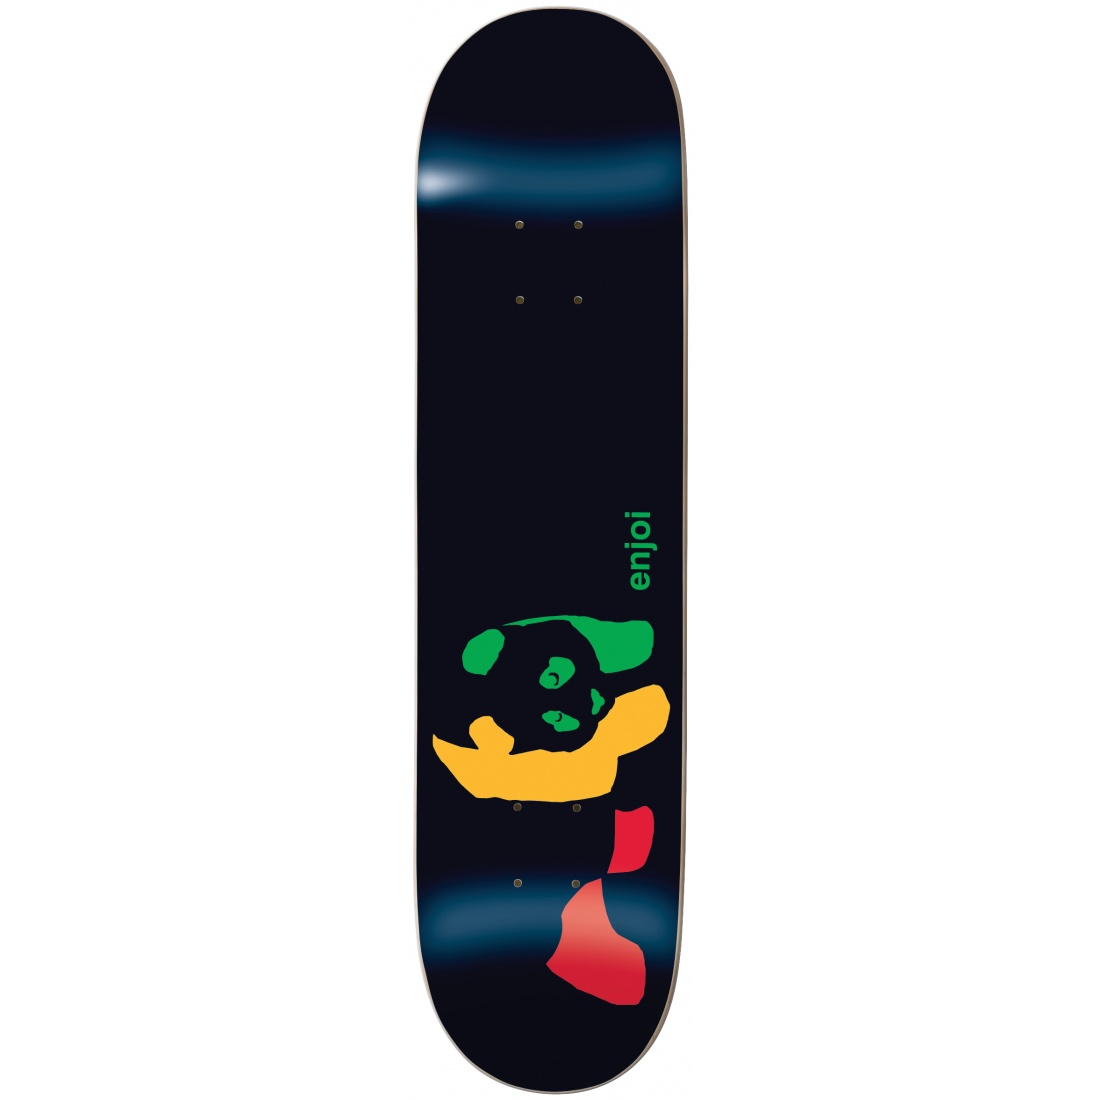 ENJ-Rasta Panda Wide R7 Black 8.1 Deck